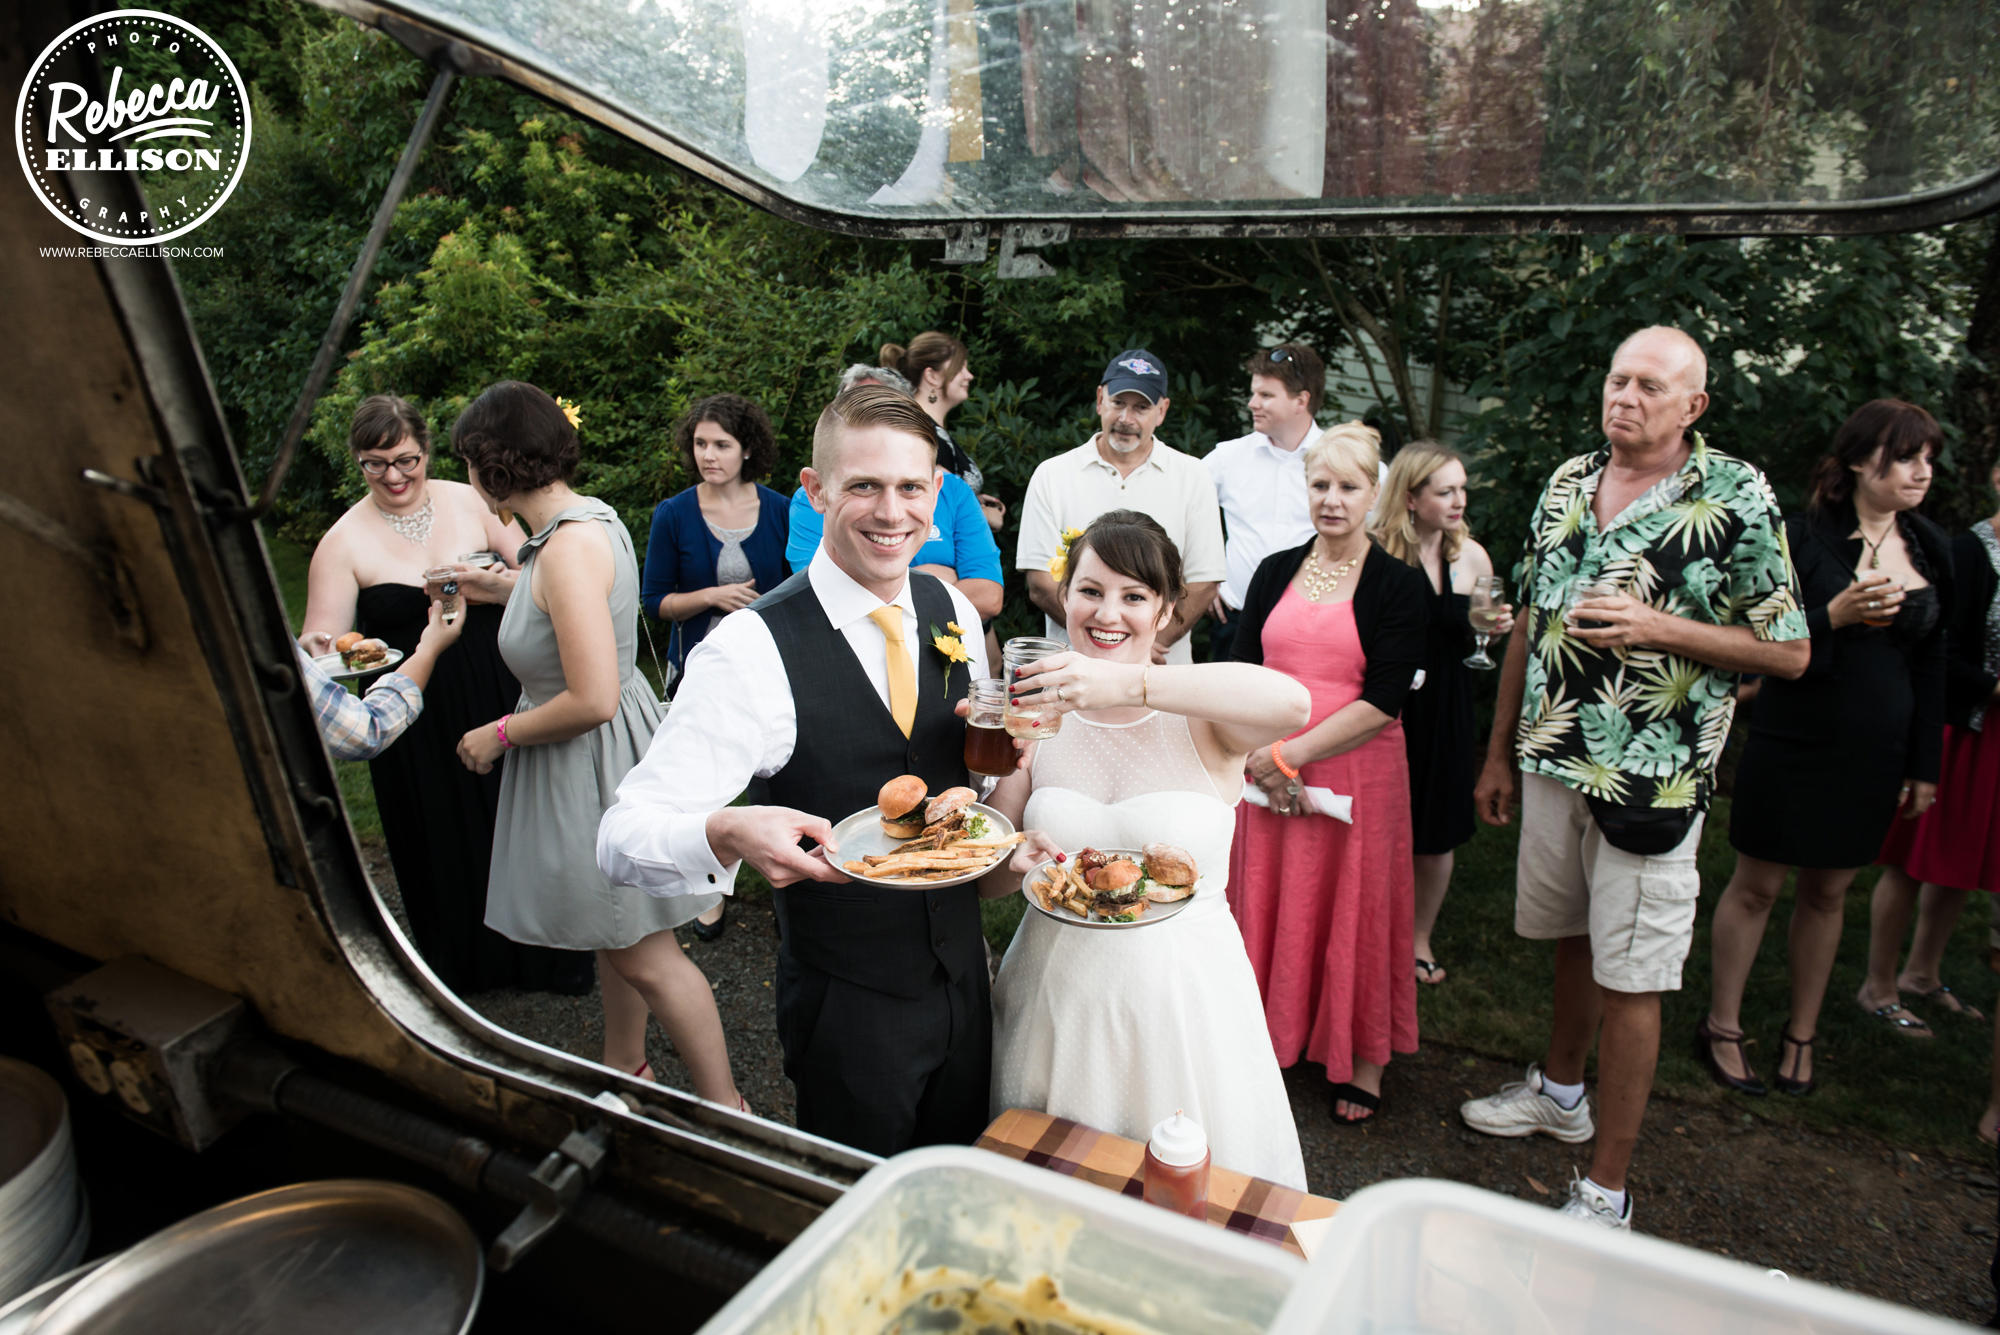 Food truck at a backyard beach house wedding reception